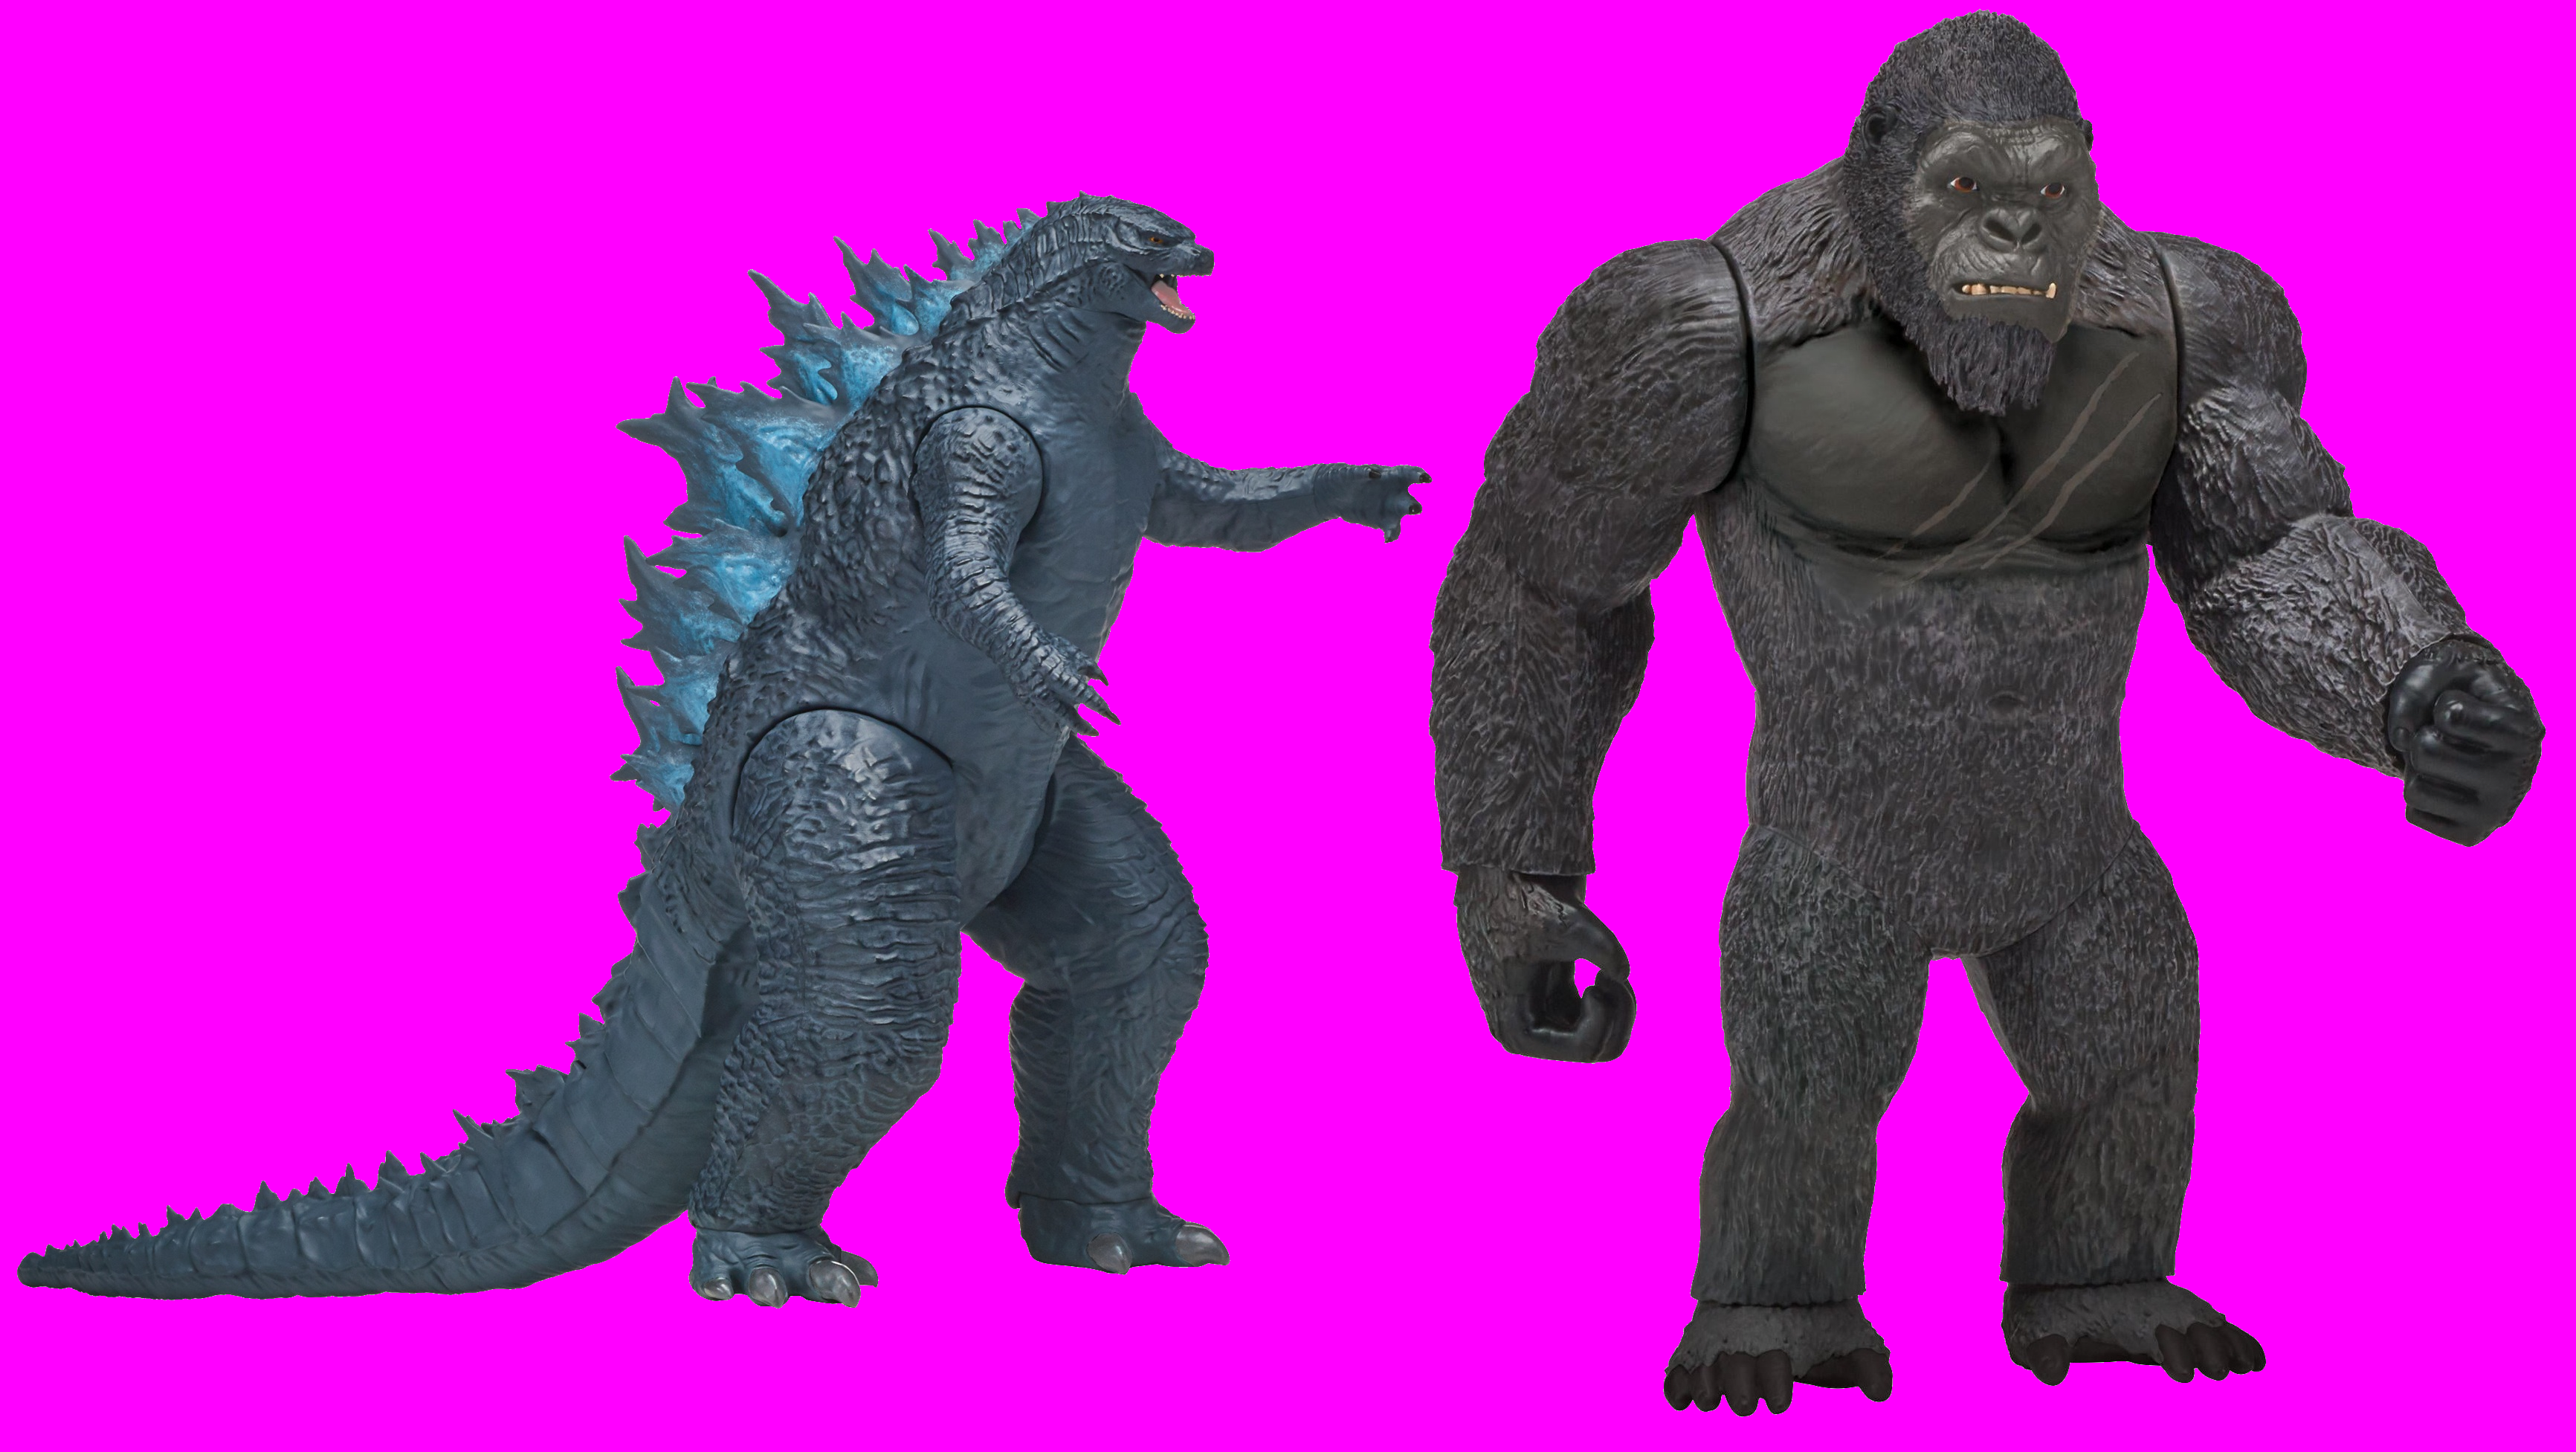 Playmates Toys Godzilla Vs Kong By Pedroaugusto14 On Deviantart